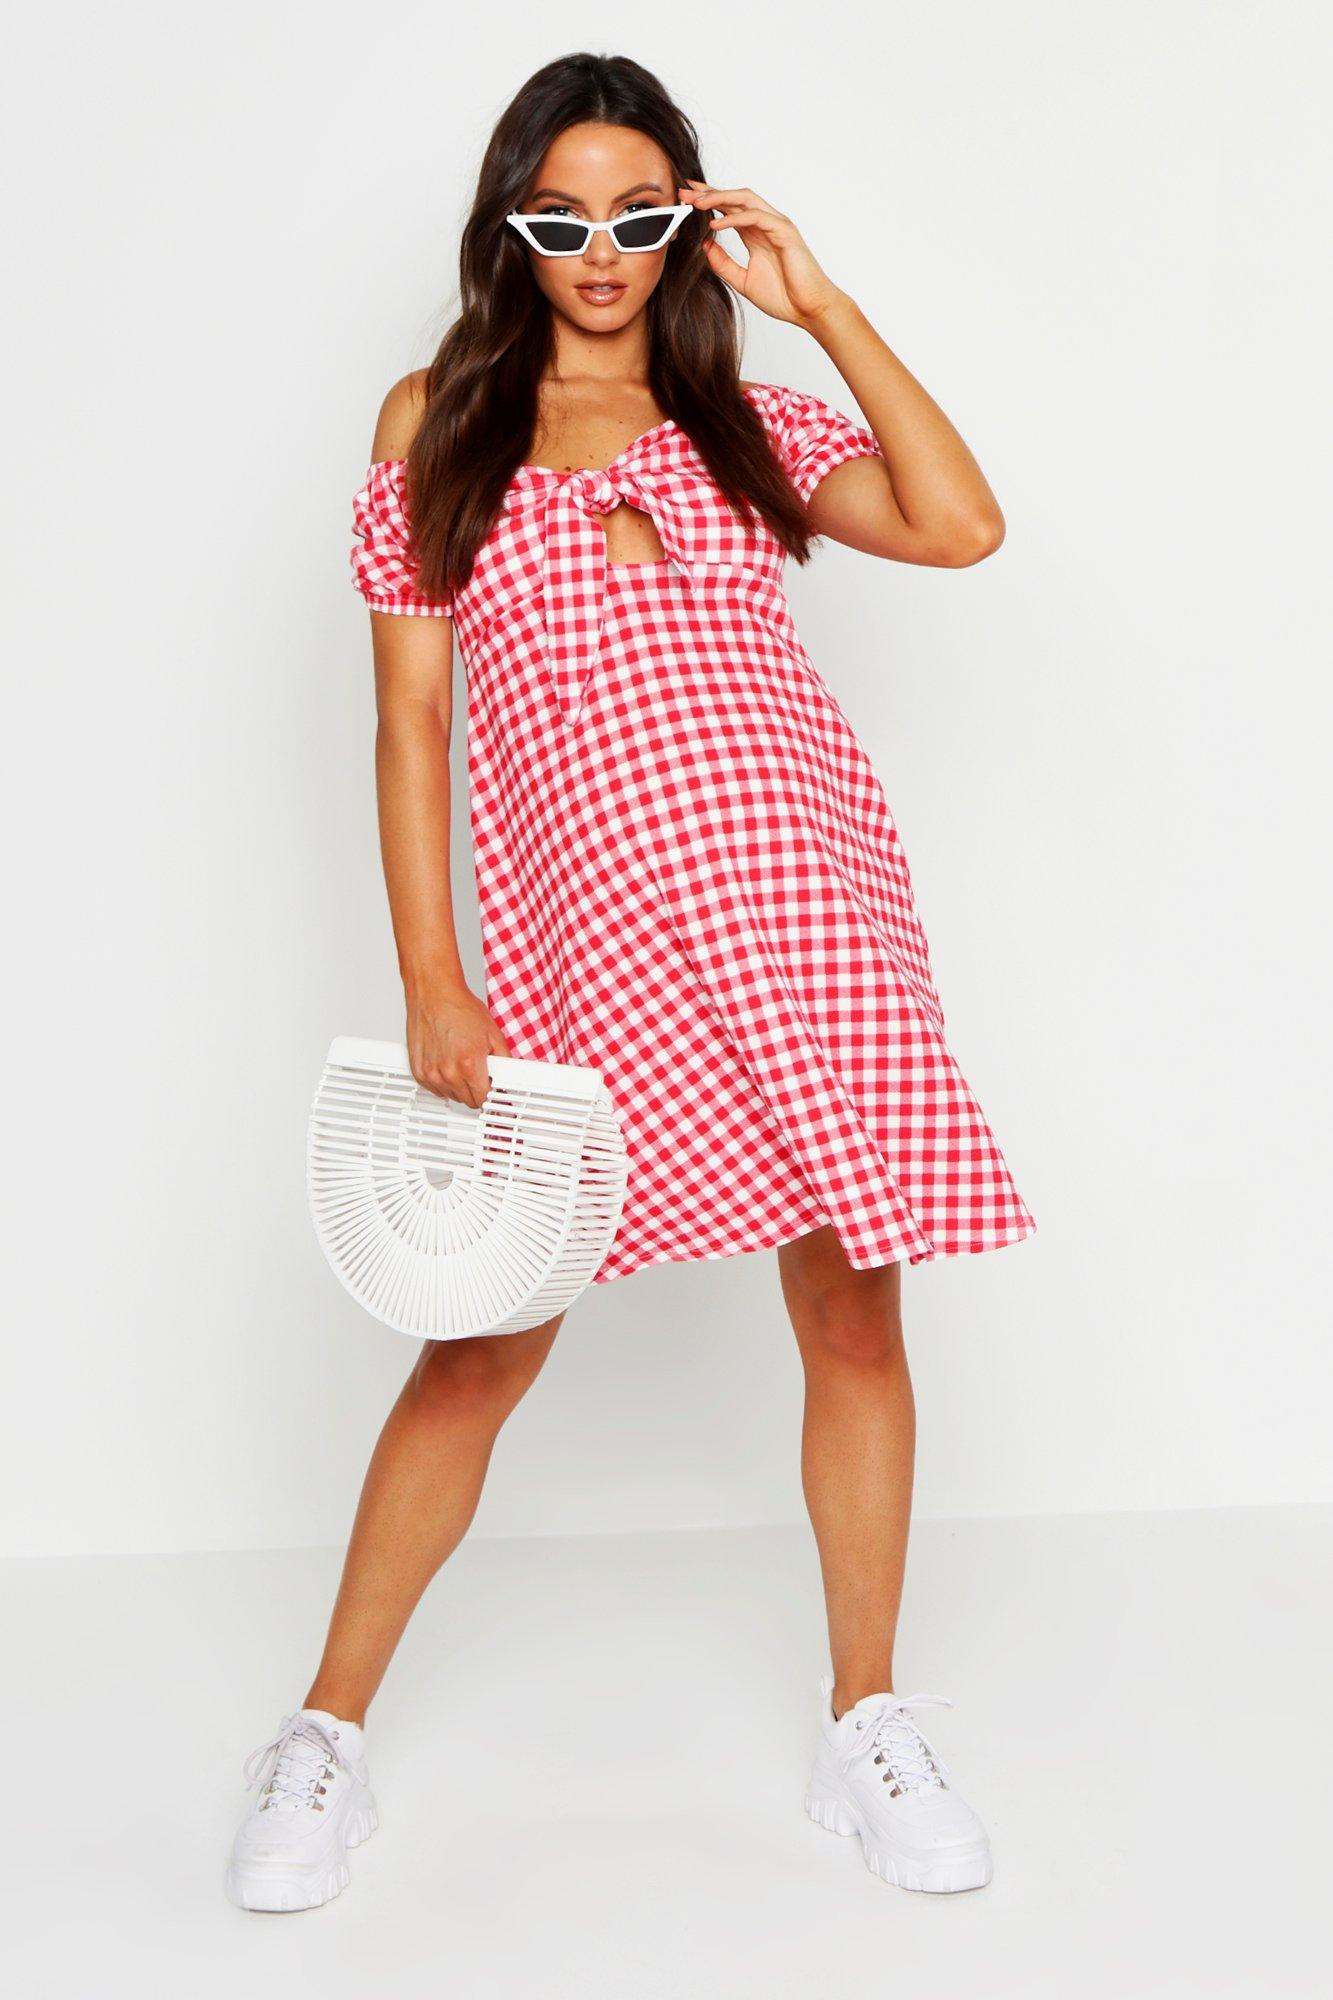 e228b7f0910da Vintage Style Maternity Clothes Maternity Tie Front Gingham Print Dress  $20.00 AT vintagedancer.com